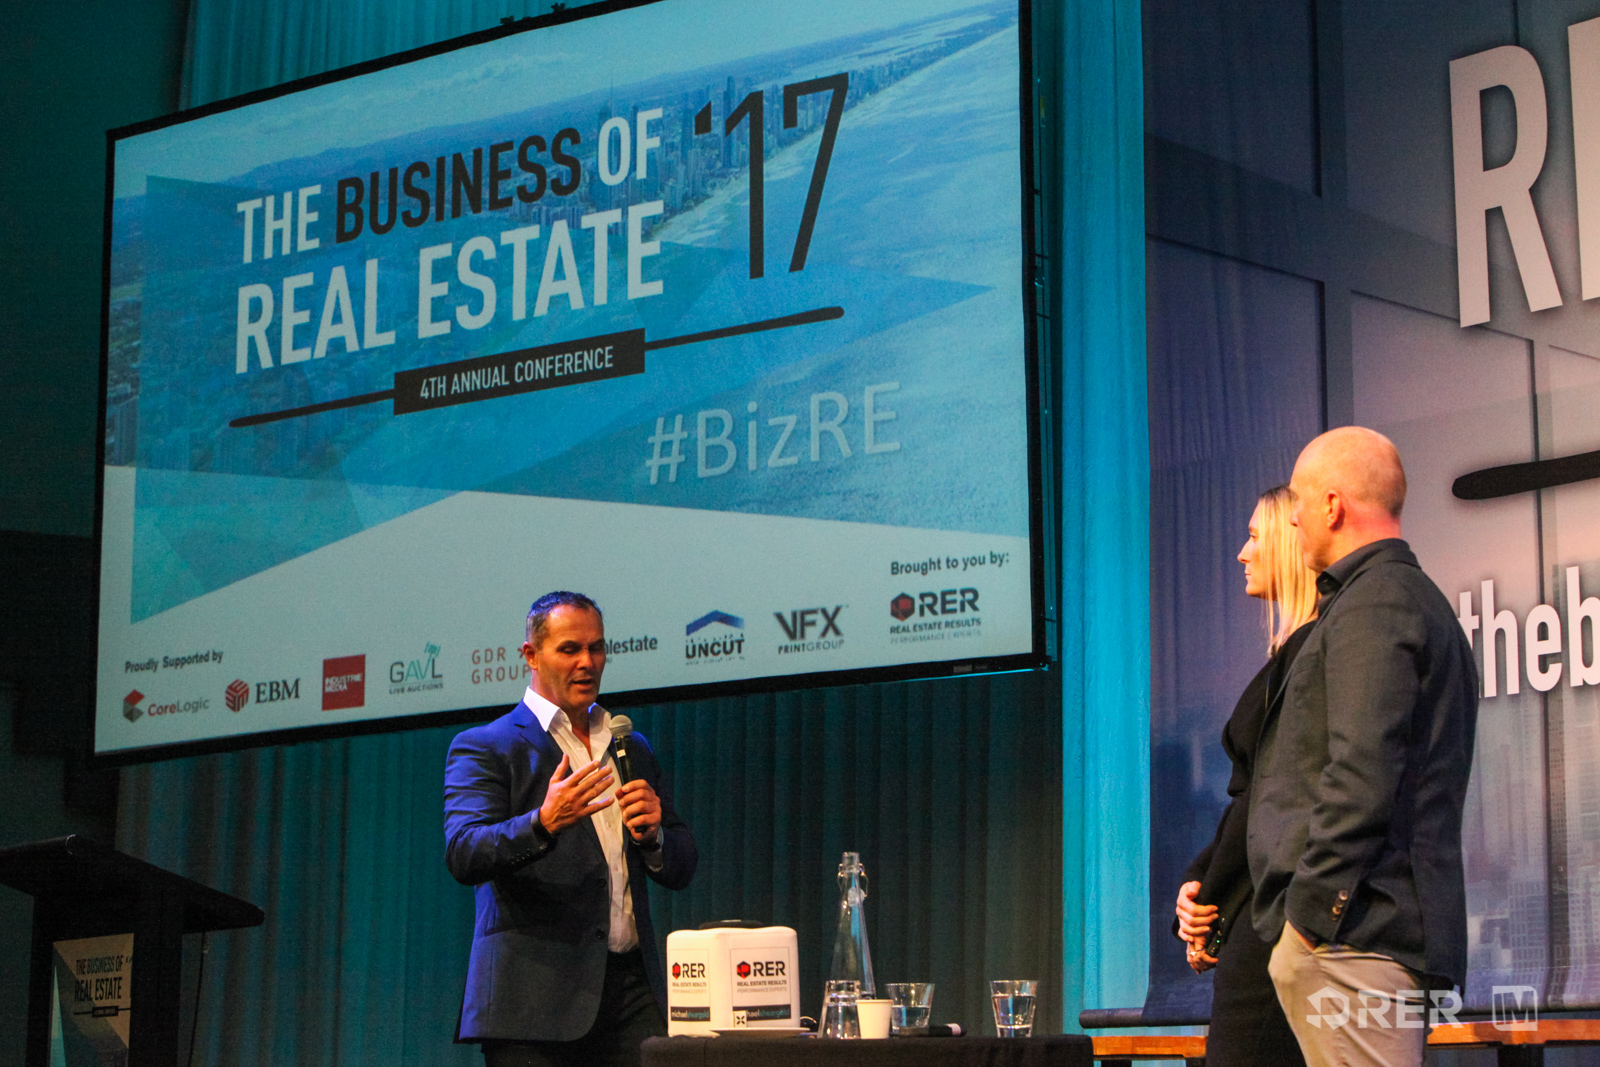 http://www.thebusinessofrealestate.com.au/wp-content/uploads/2017/09/39342_RER_THE_BUSINESS_OF_REAL_ESTATE_DAY2_LR-91.jpg